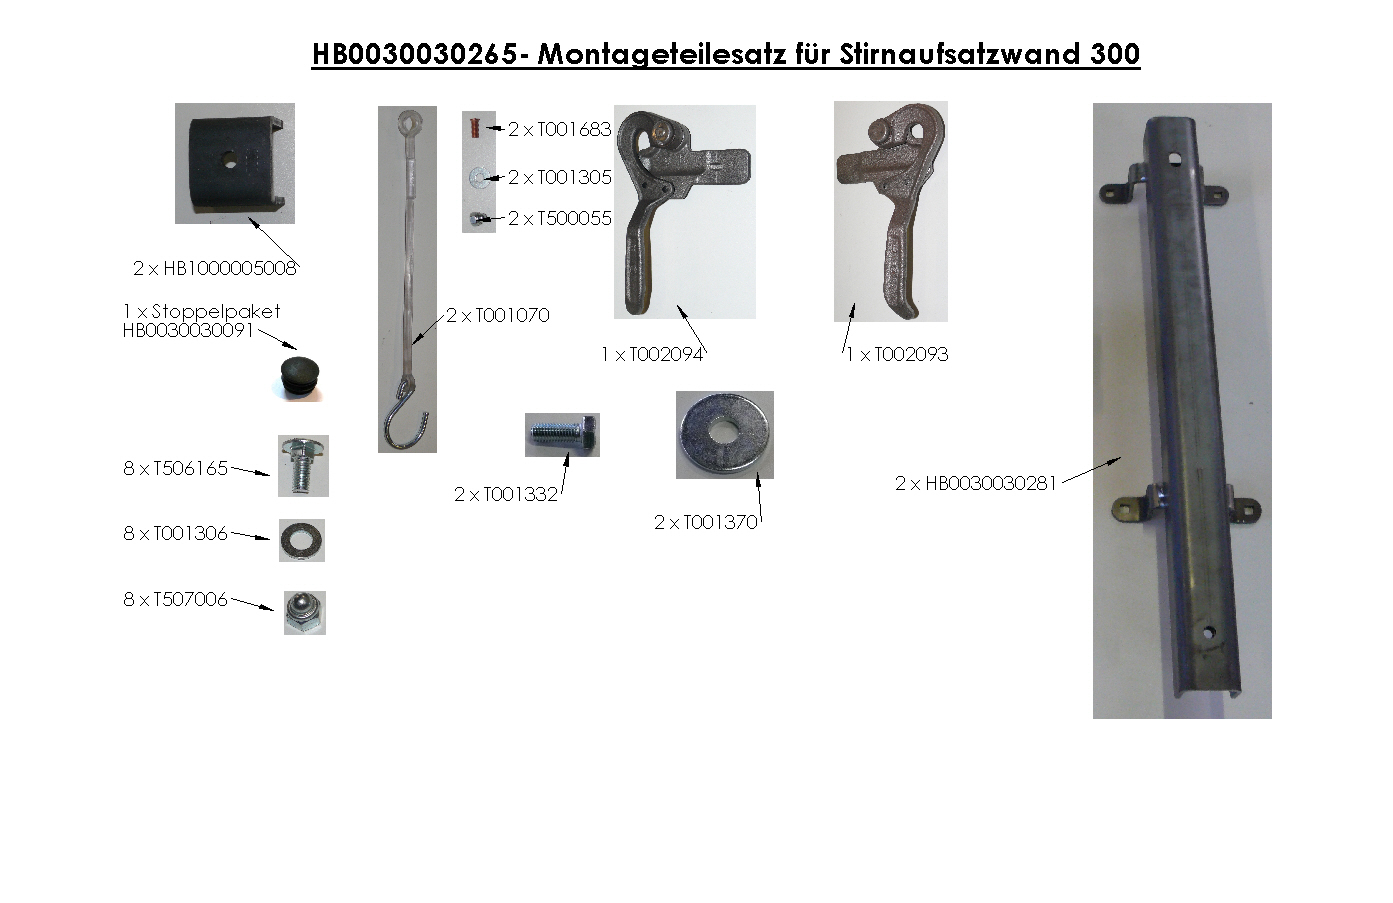 Brantner Kipper und Anhänger - assembly kit for front attachment wall 300